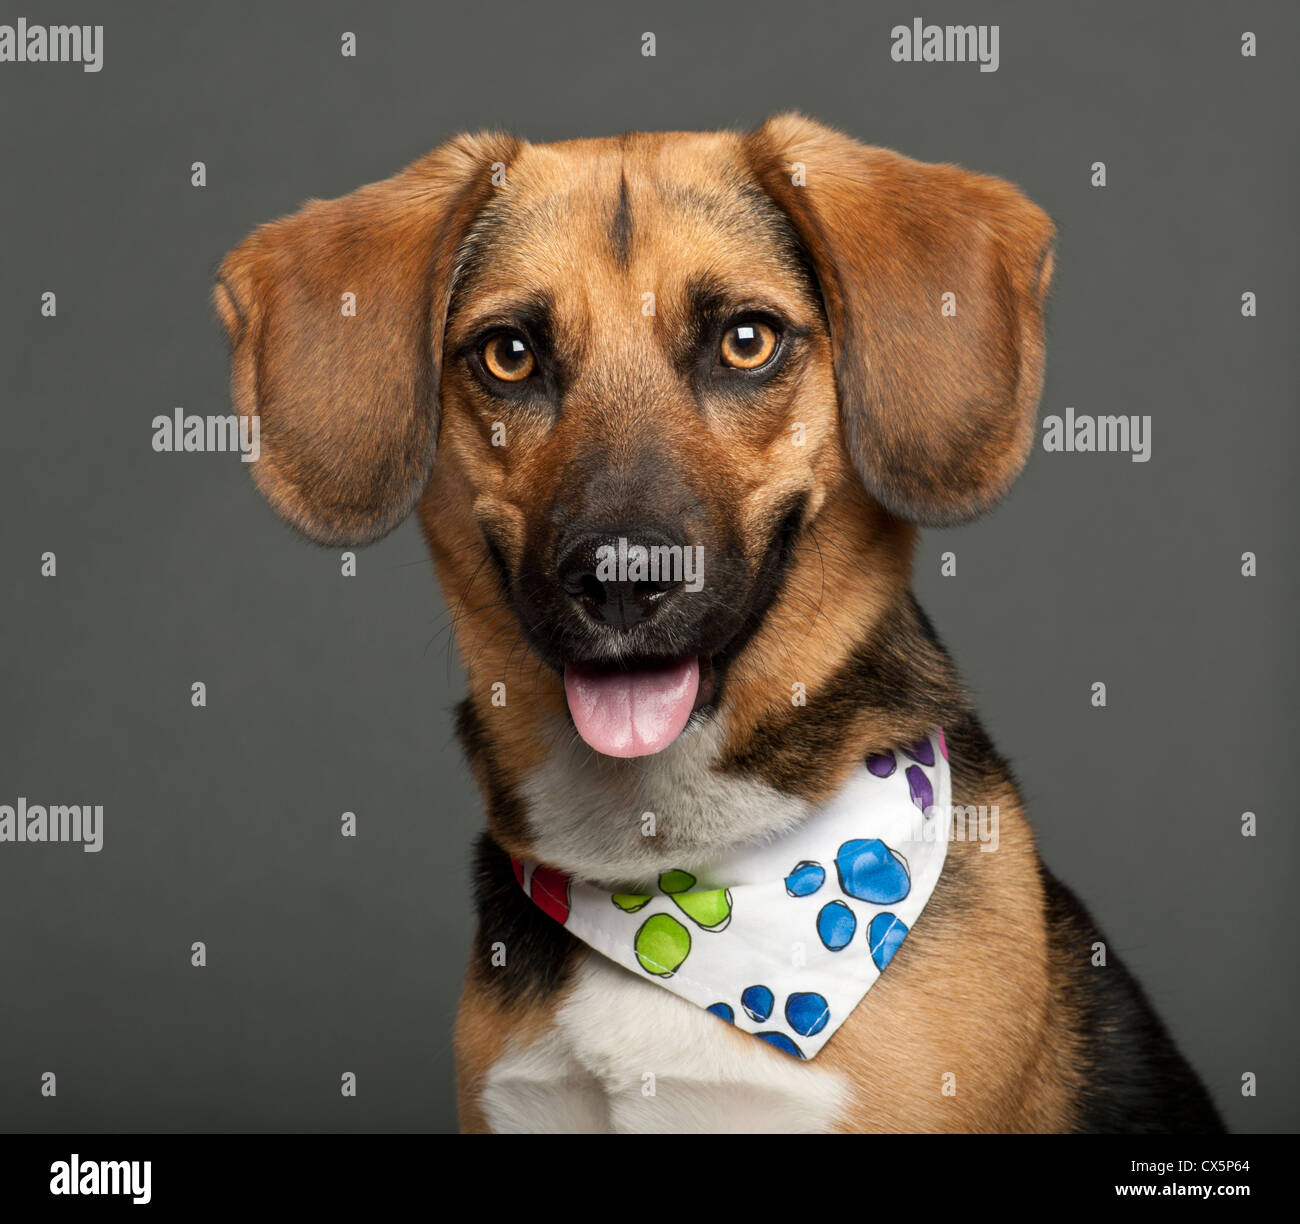 Dog cross bred with beagle, 2 years old, wearing neckerchief against gray background - Stock Image